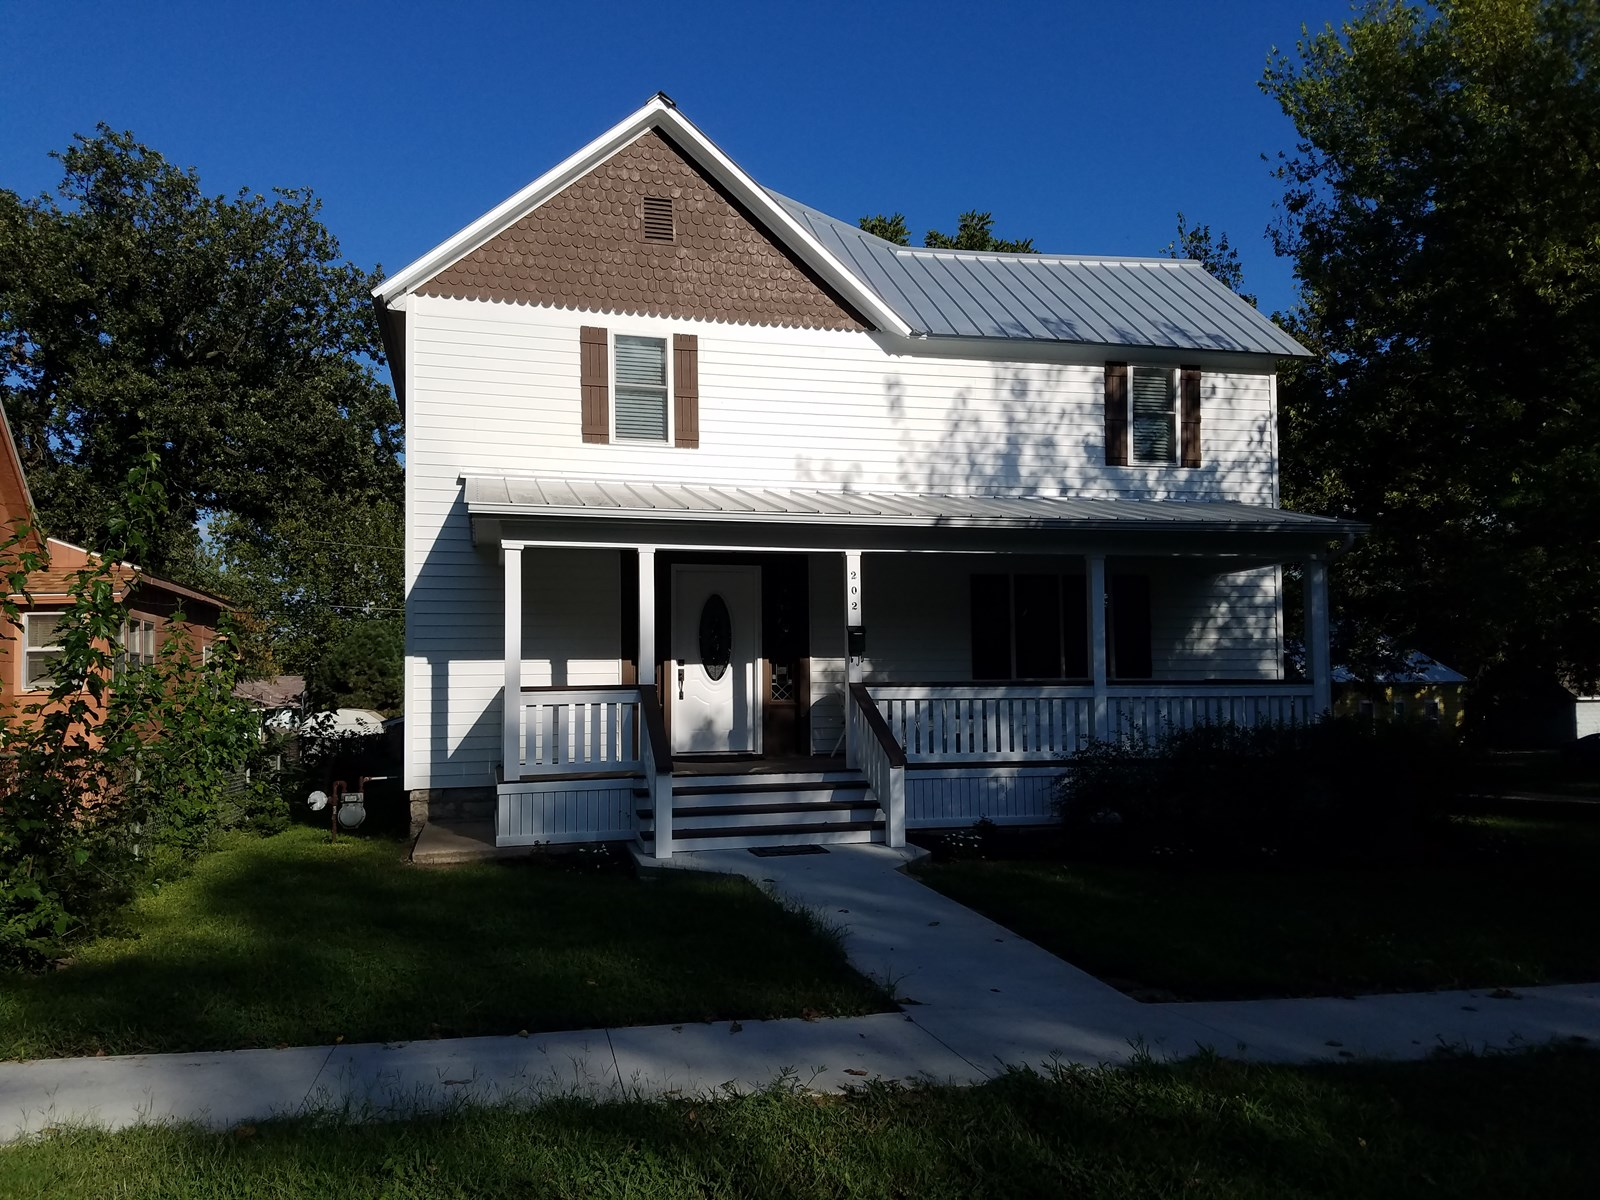 House for Sale in Chanute Kansas